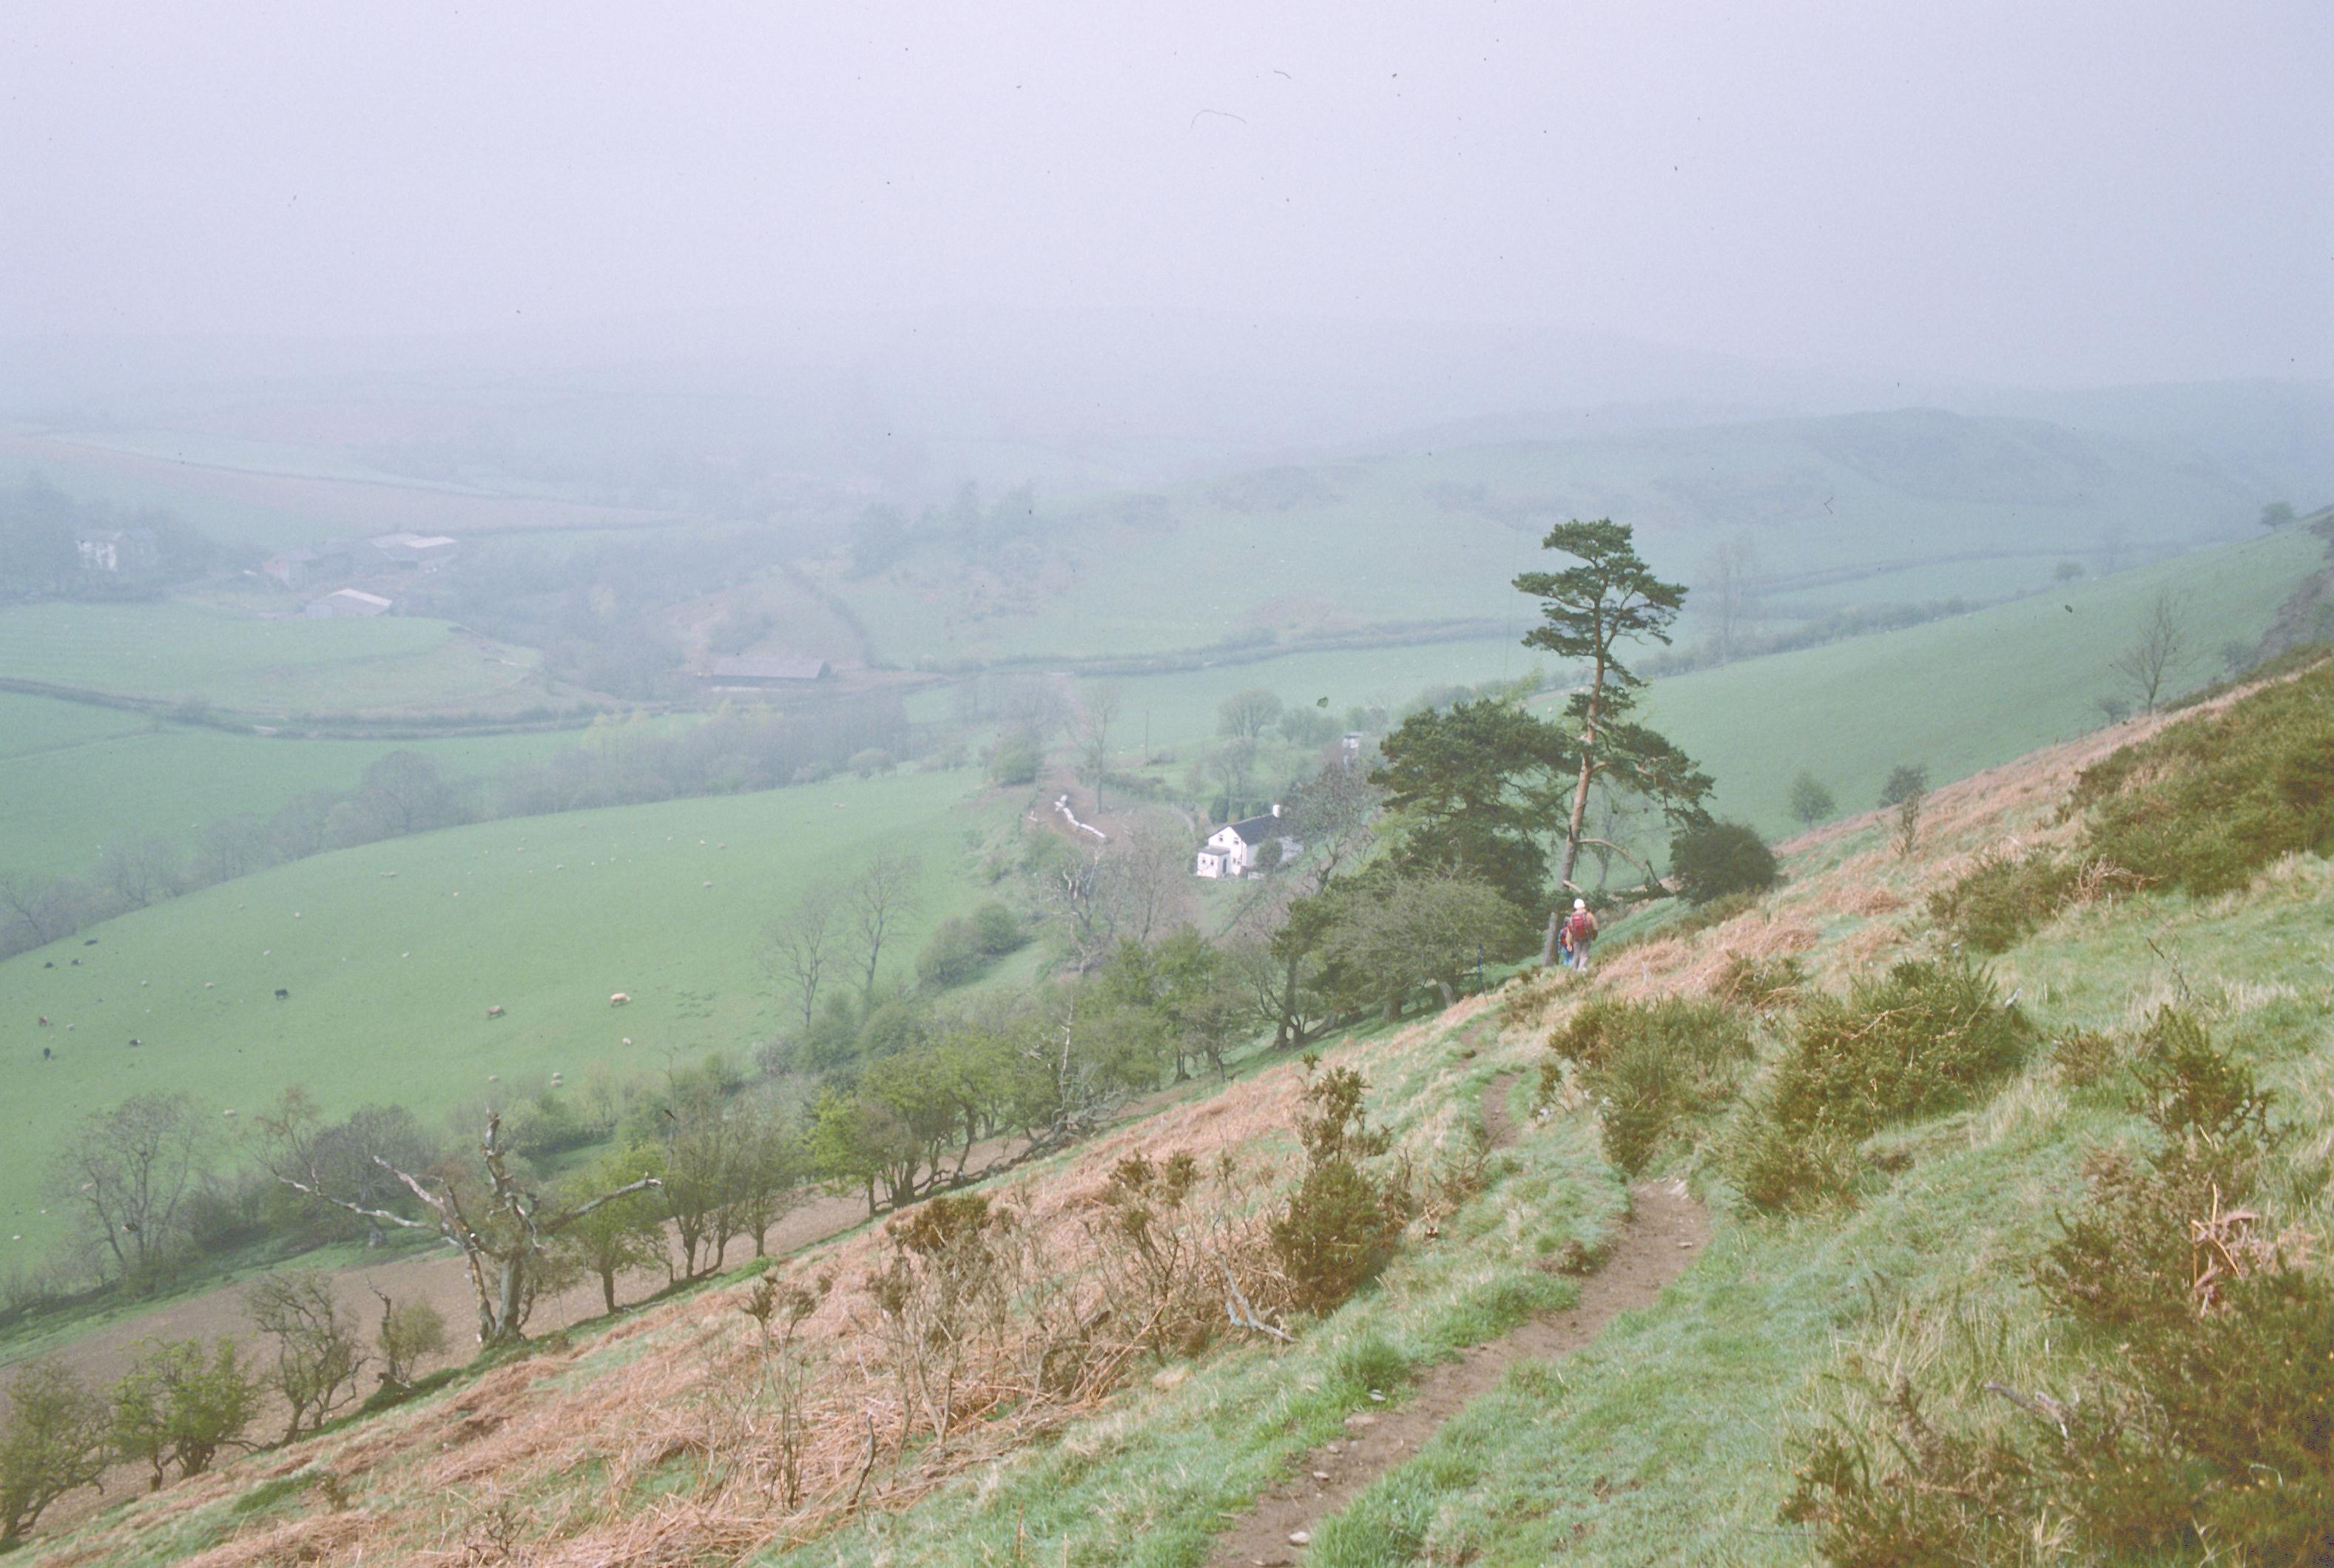 The descent to Brynorgan